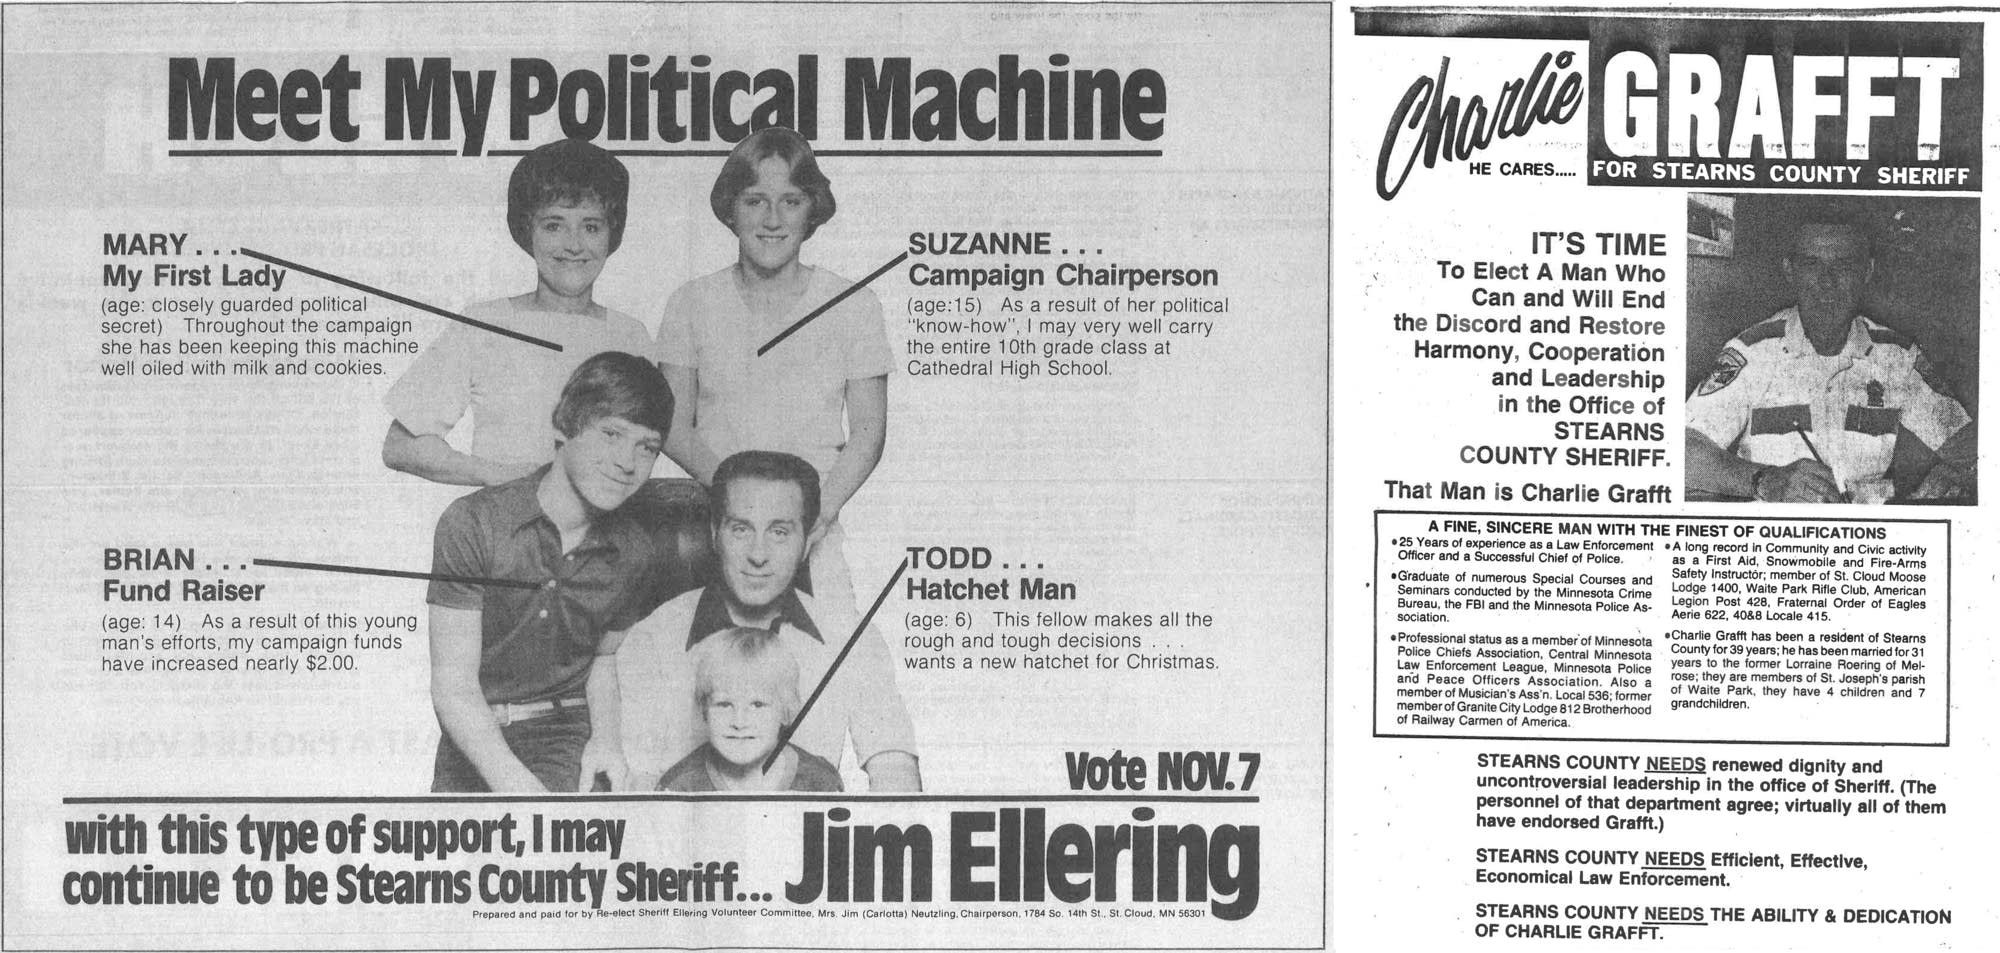 Stearns County sheriff race (1978)